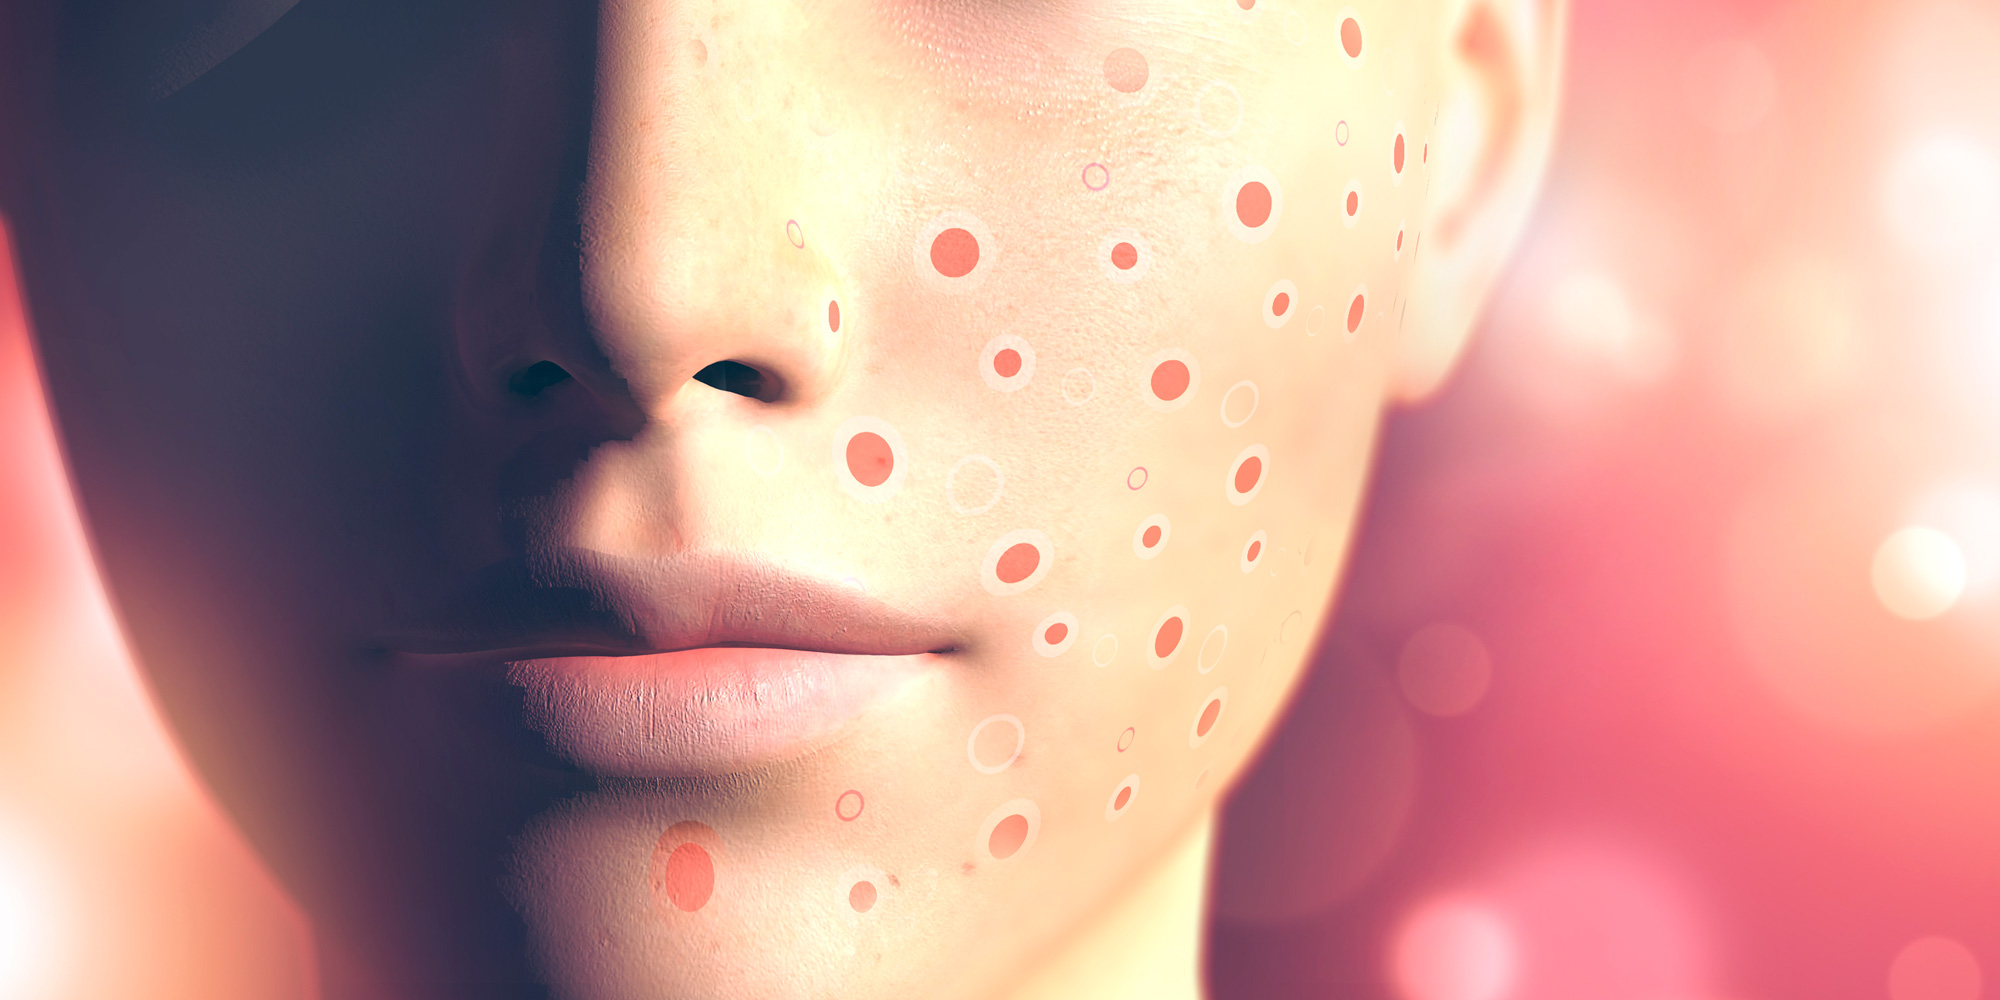 Prescribing Isotretinoin For Patients With Acne In Primary Care Best Practice Advocacy Centre New Zealand